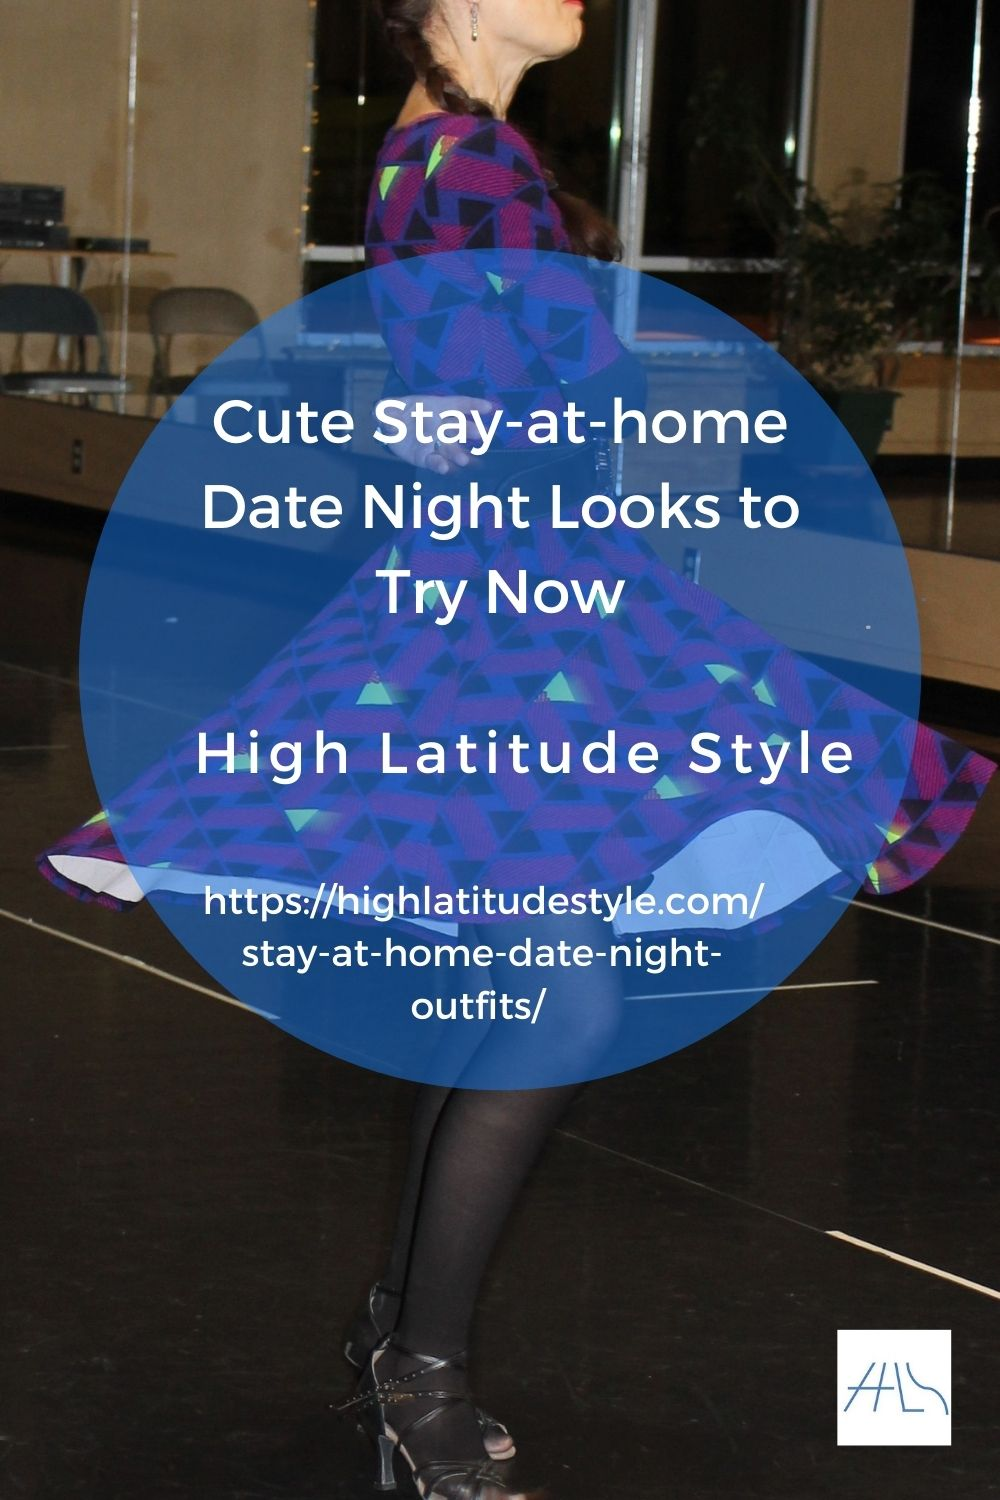 post banner for staying at home date nite looks showing a woman twirlling in a fit-and-flare dress